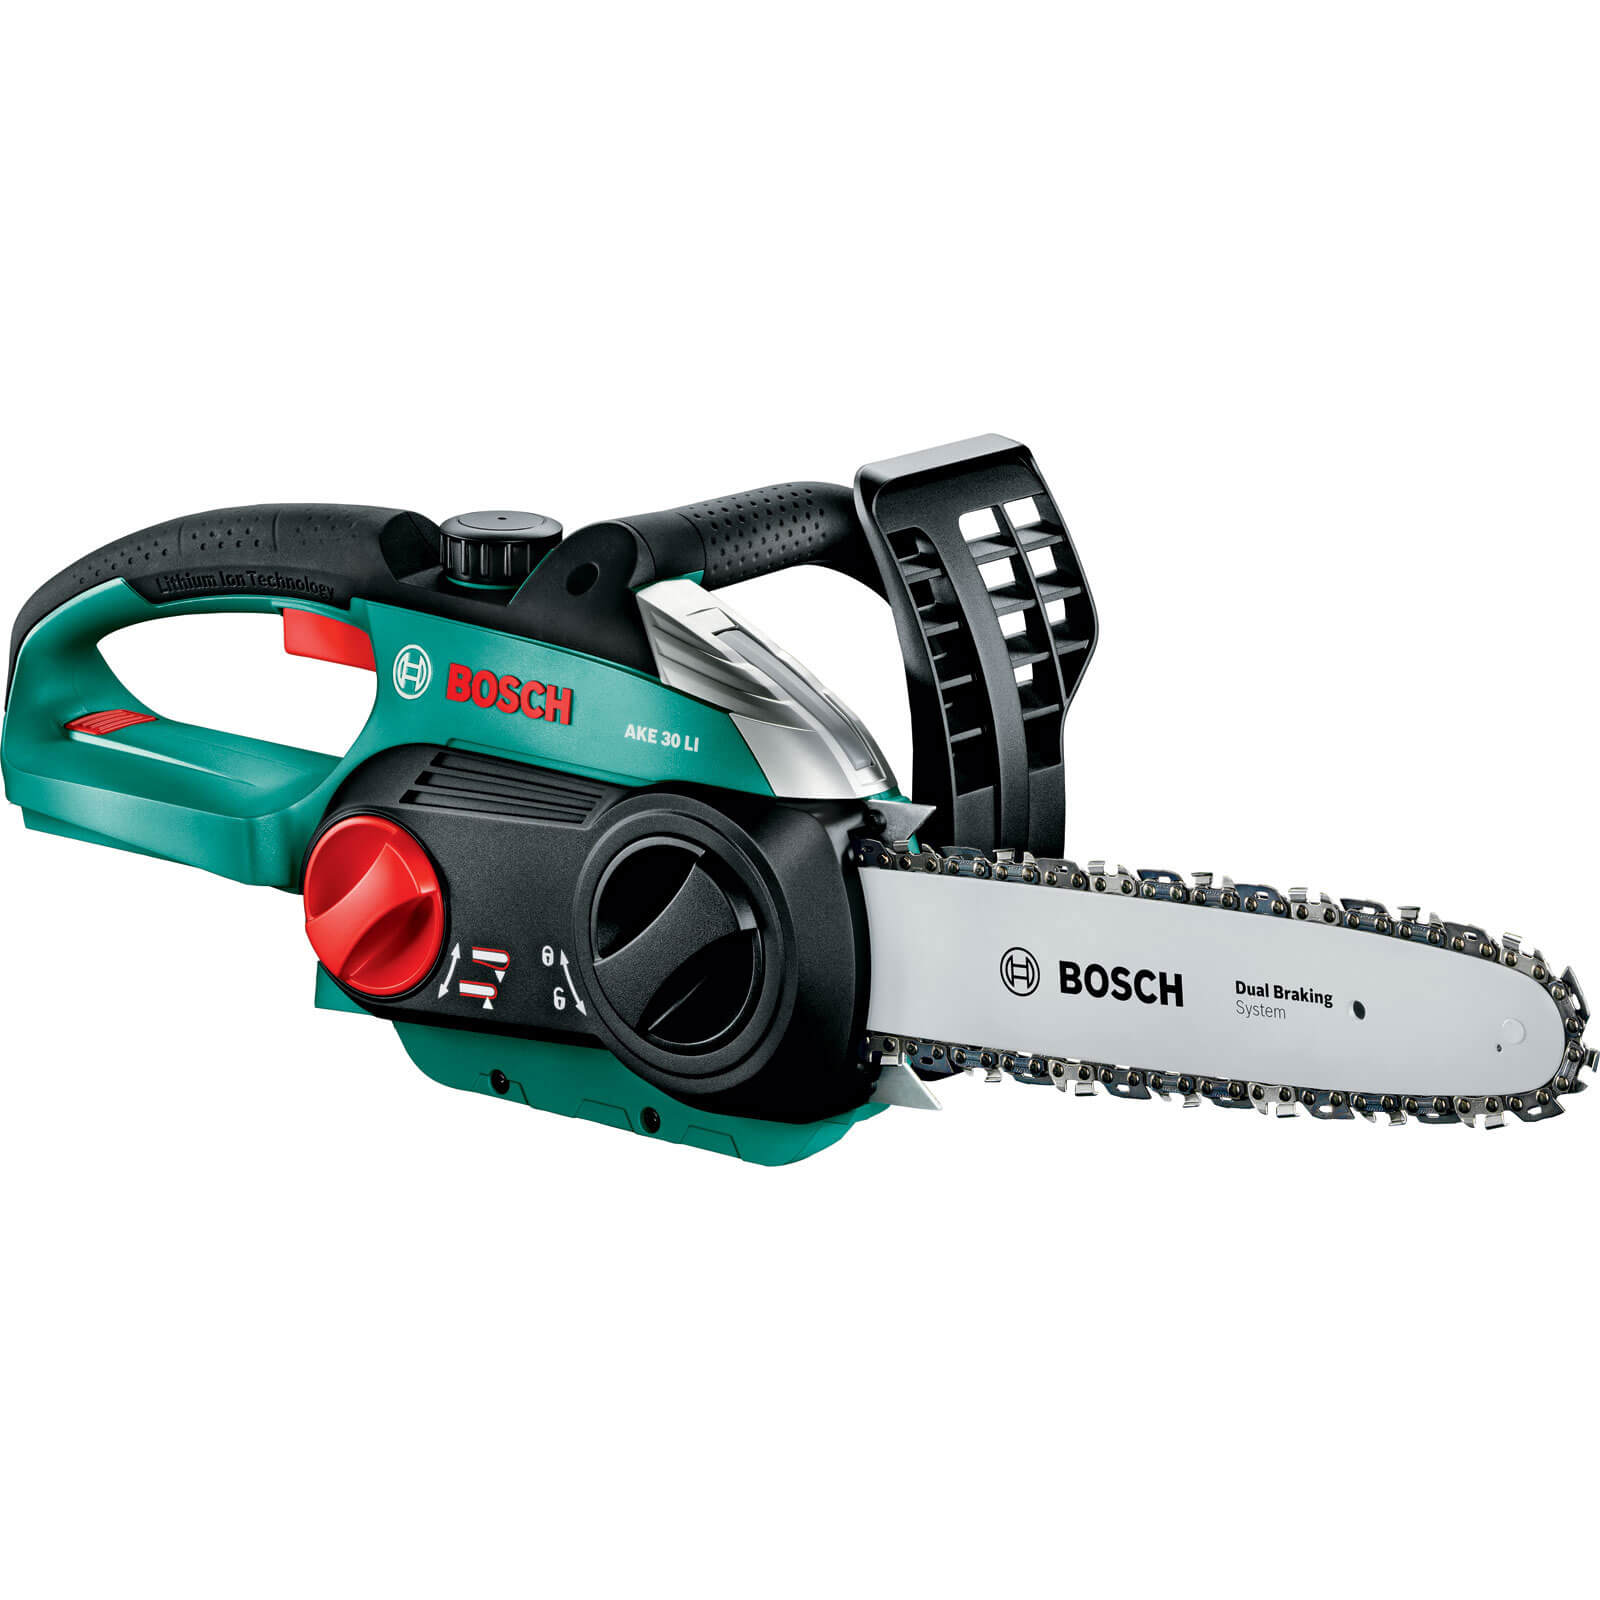 Bosch AKE 30 LI 36v Cordless Chain Saw 300mm Bar Length without Battery or Charger